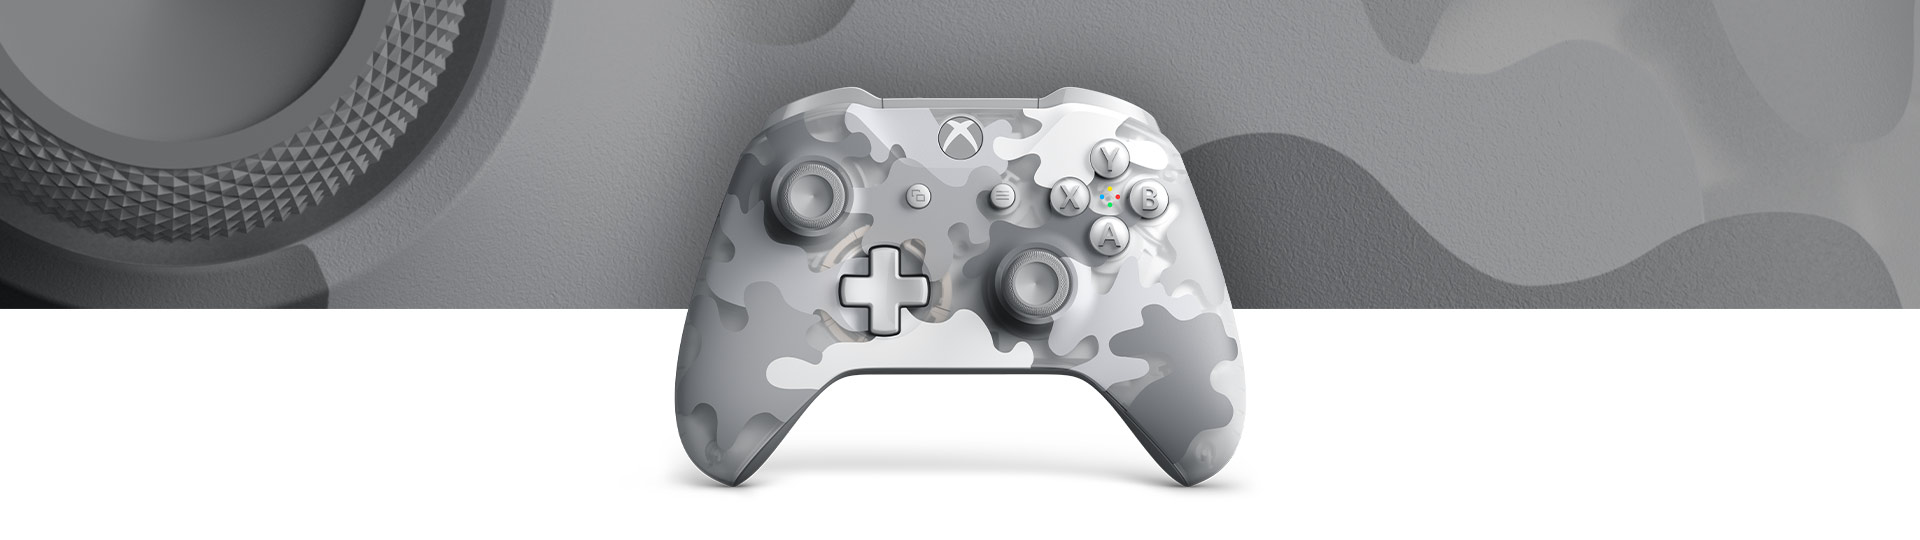 Front view of Xbox Wireless Controller - Arctic Camo Special Edition with a closeup of a translucent camouflage pattern.